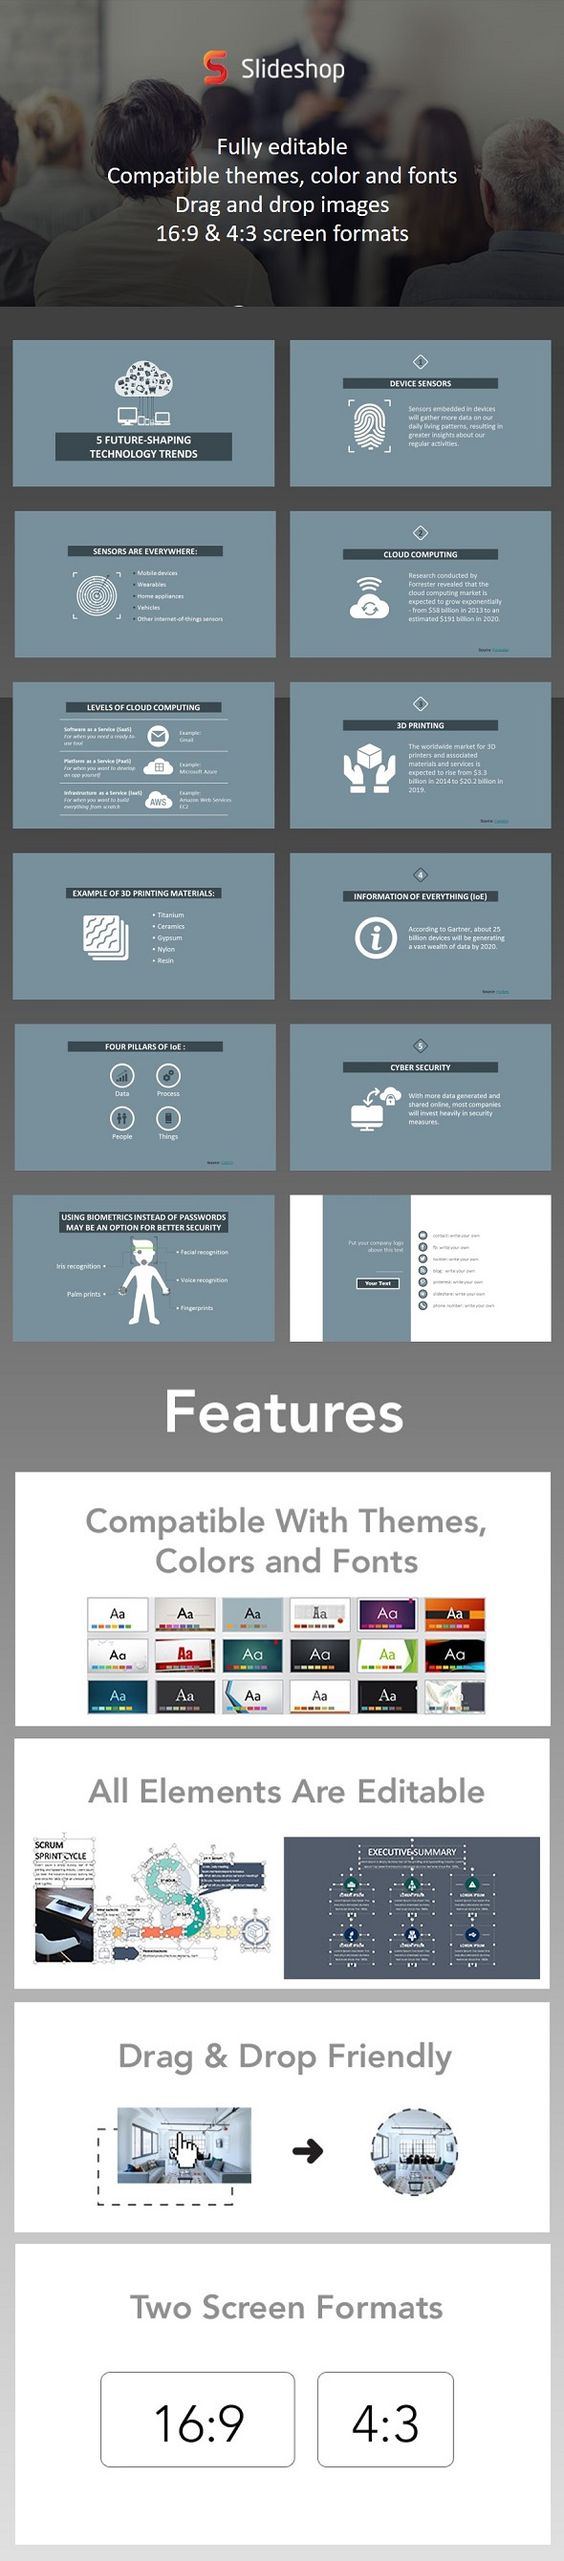 Technology trends powerpoint themes and presentation templates technology trends powerpoint template powerpoint themestemplates alramifo Image collections